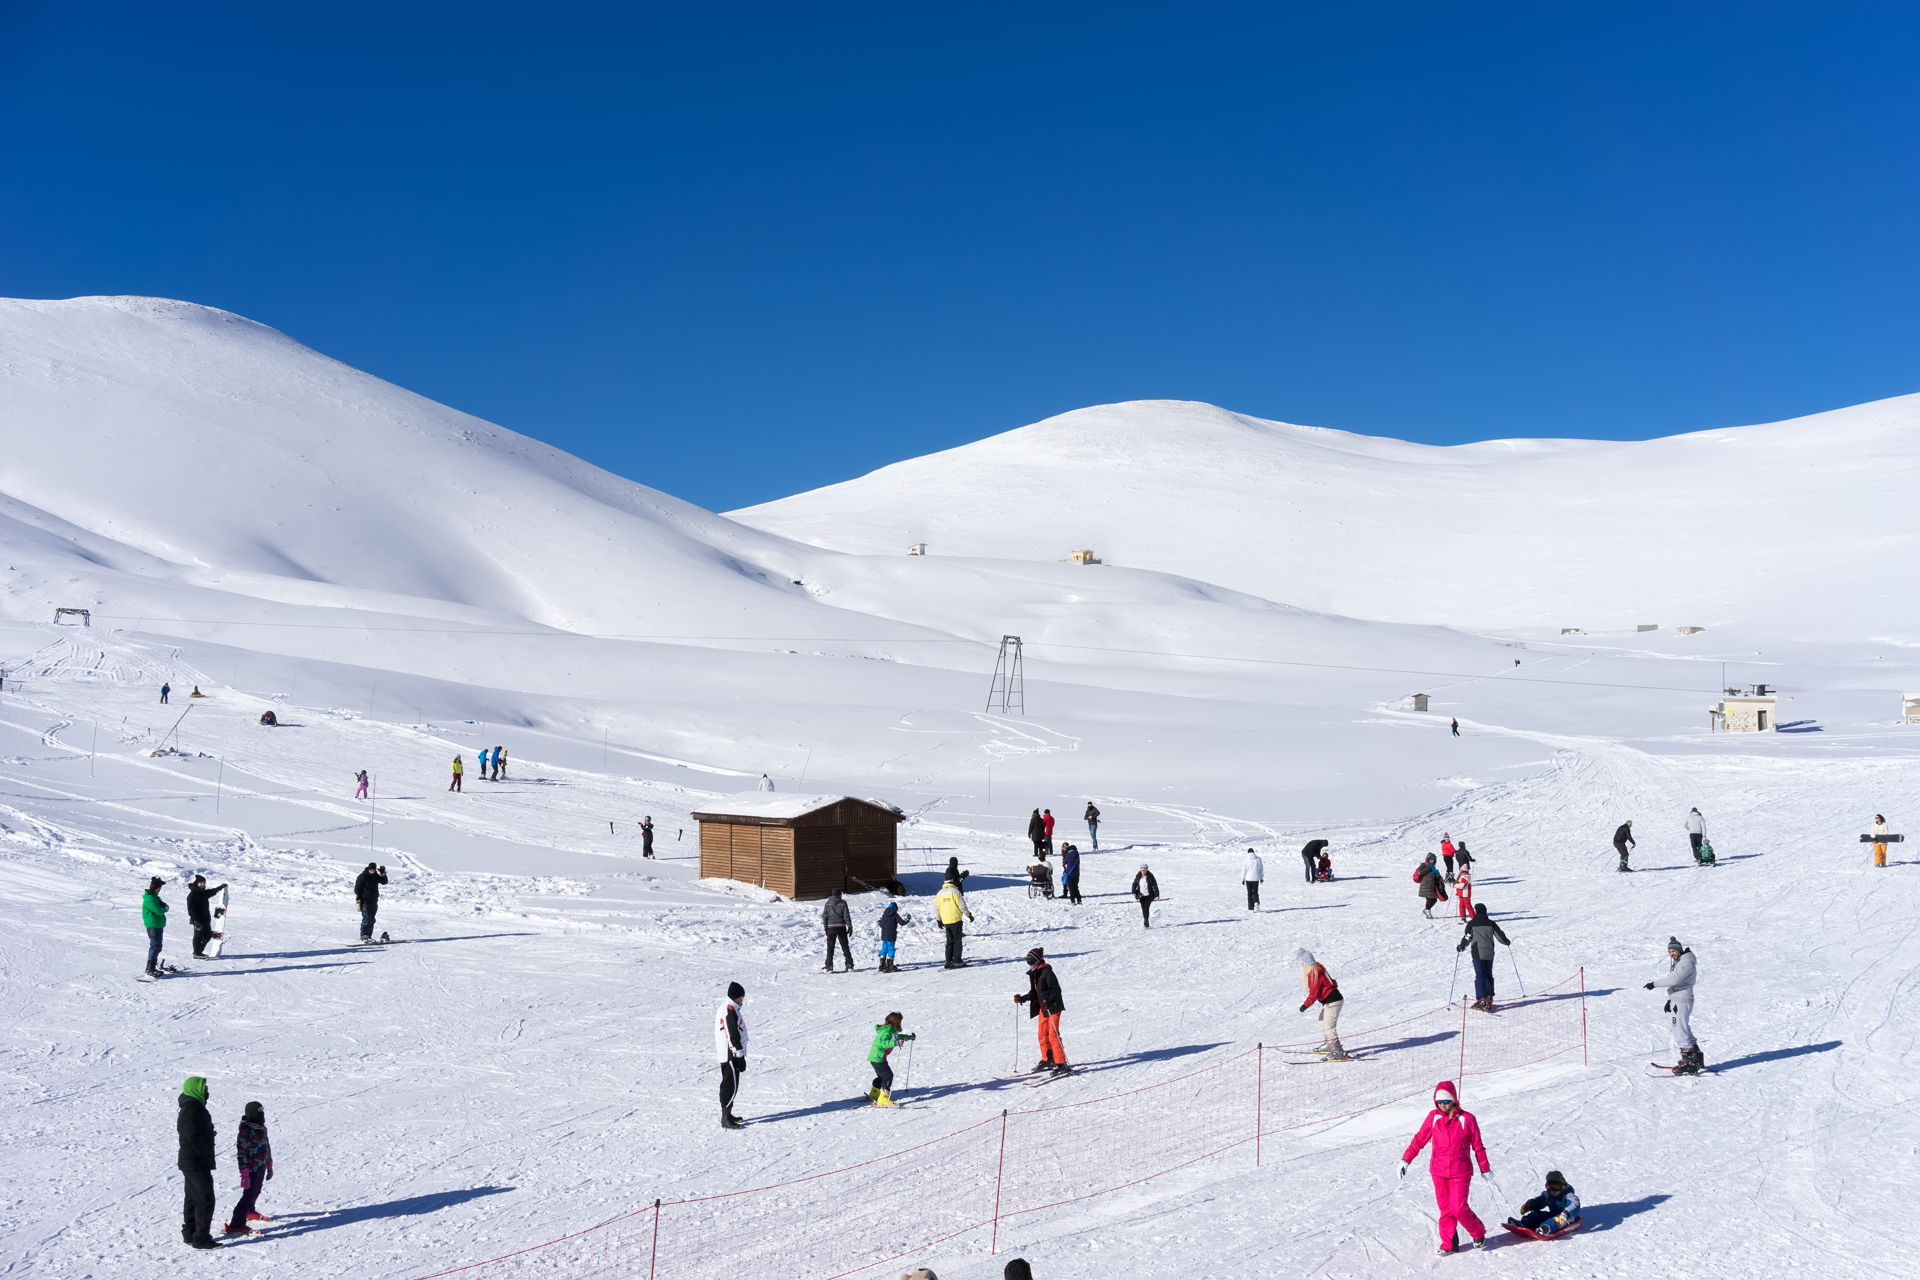 The ski resort of Falakro Mountain is located in the area of Dramas